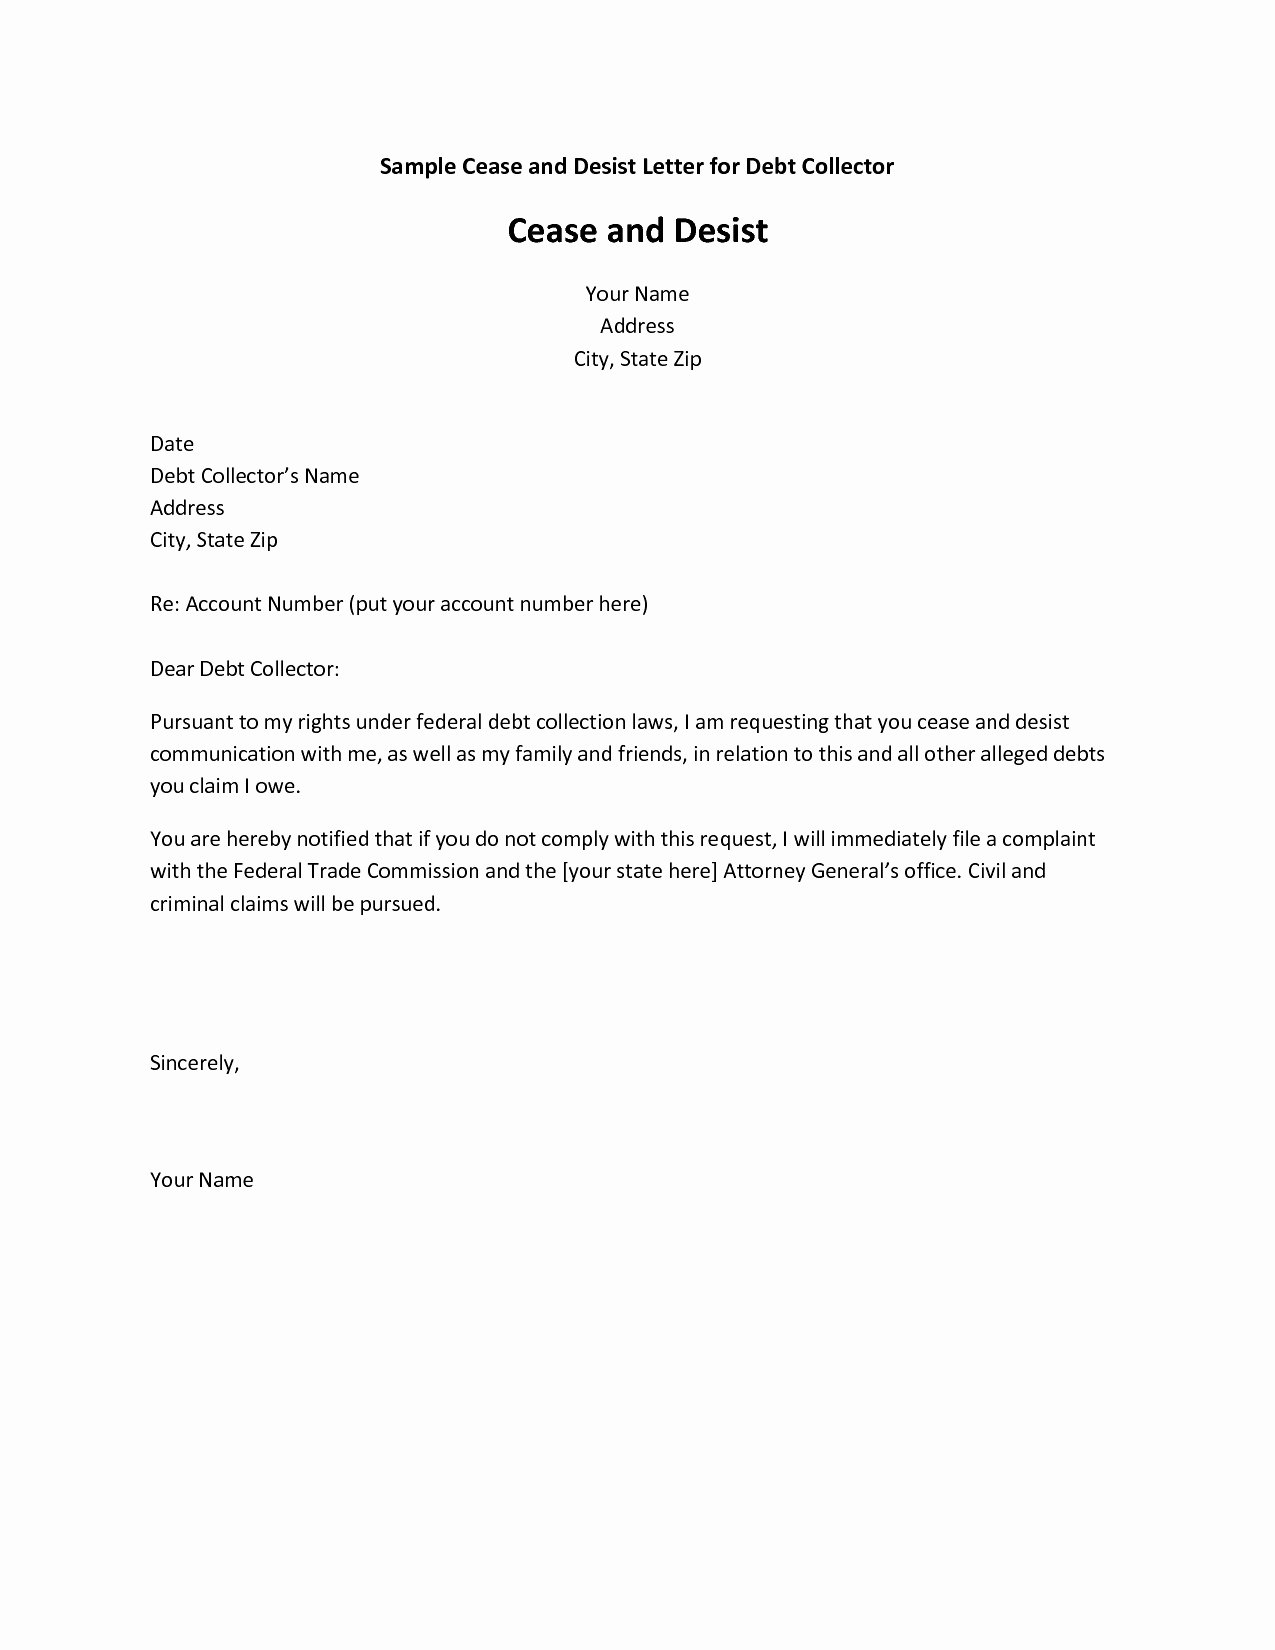 Letter Of Cease and Desist Best Of 9 Cease and Desist Letter Examples Pdf